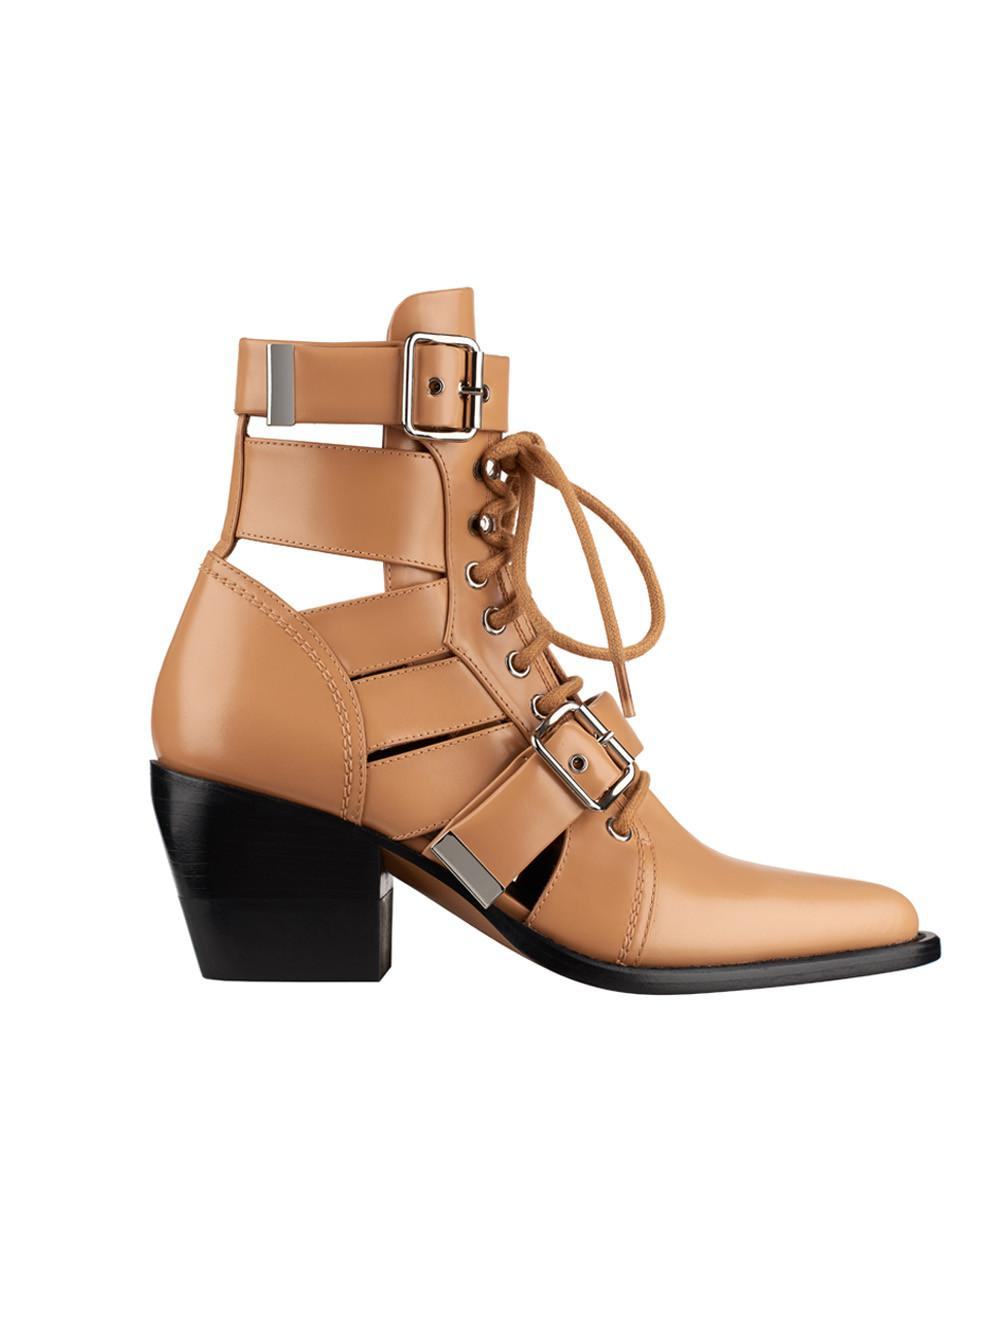 Chlo 233 Rylee Dust Cutout Leather Ankle Boots In Brown Lyst